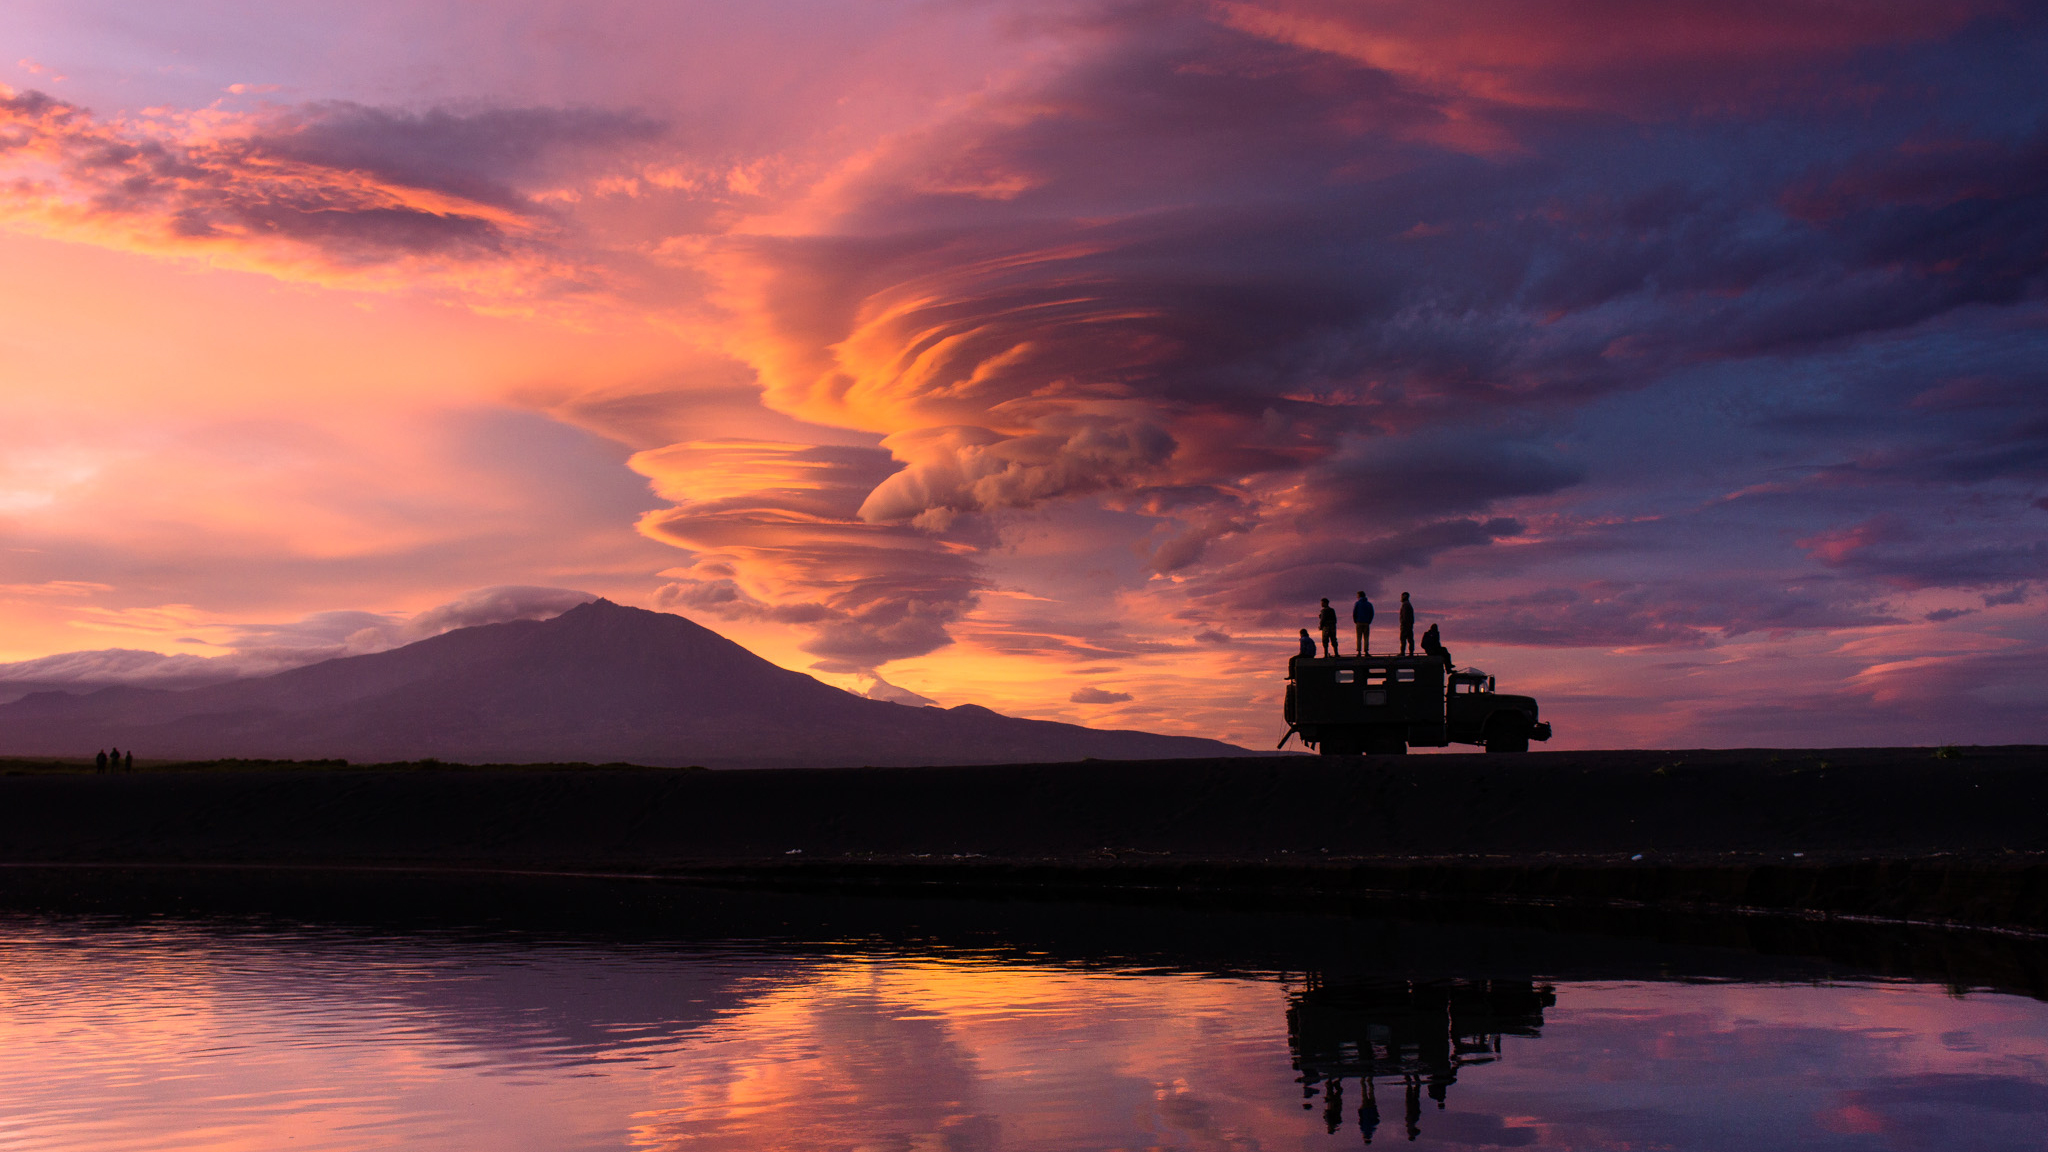 Sunset on the Kamchatka